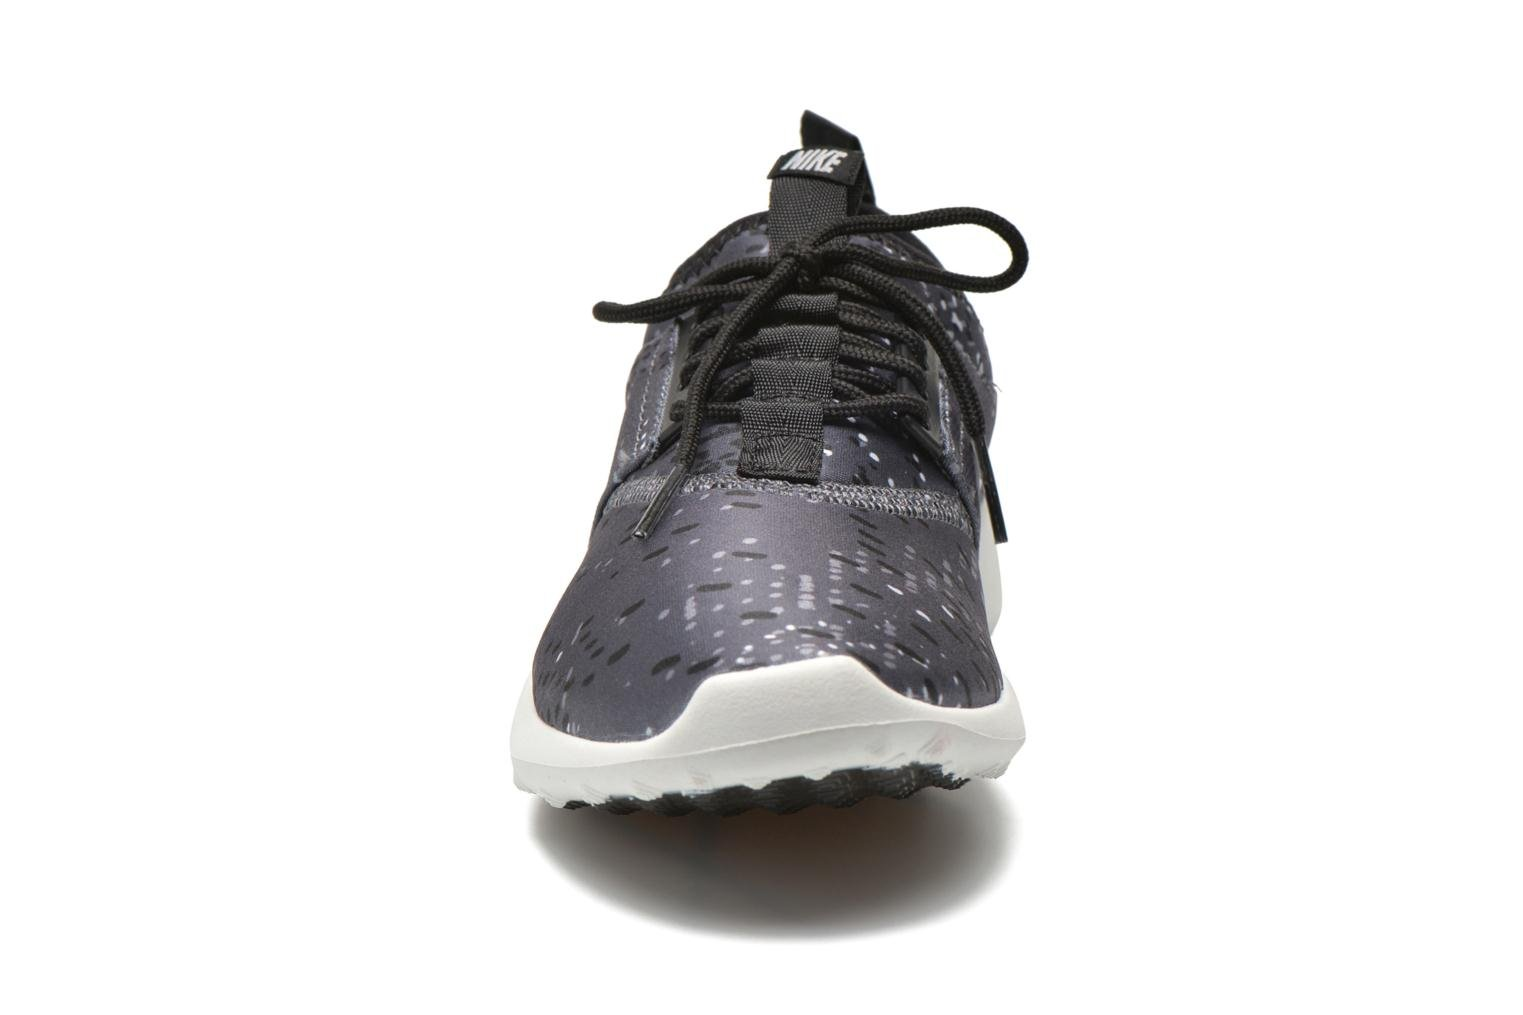 Wmns Nike Juvenate Print Dark Grey/White-Black-Pr Pltnm